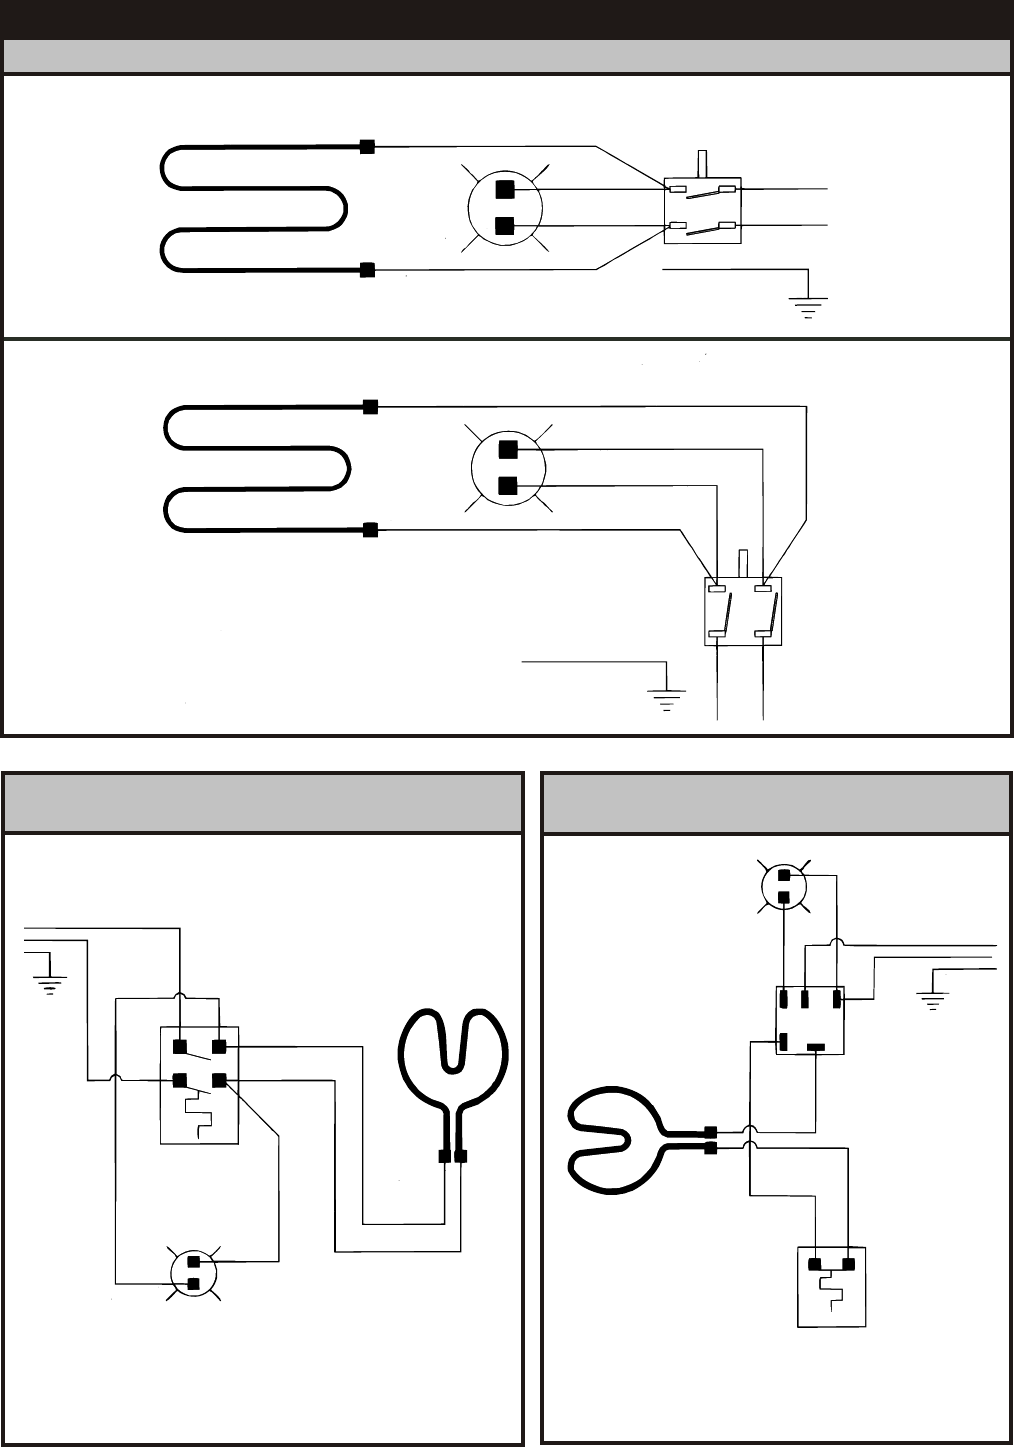 ca7b3e15 4662 41e6 adbd 34fa5e64b3e9 bg8 page 8 of apw wyott food warmer hfw 1 user guide manualsonline com robertshaw infinite switch wiring diagram at webbmarketing.co